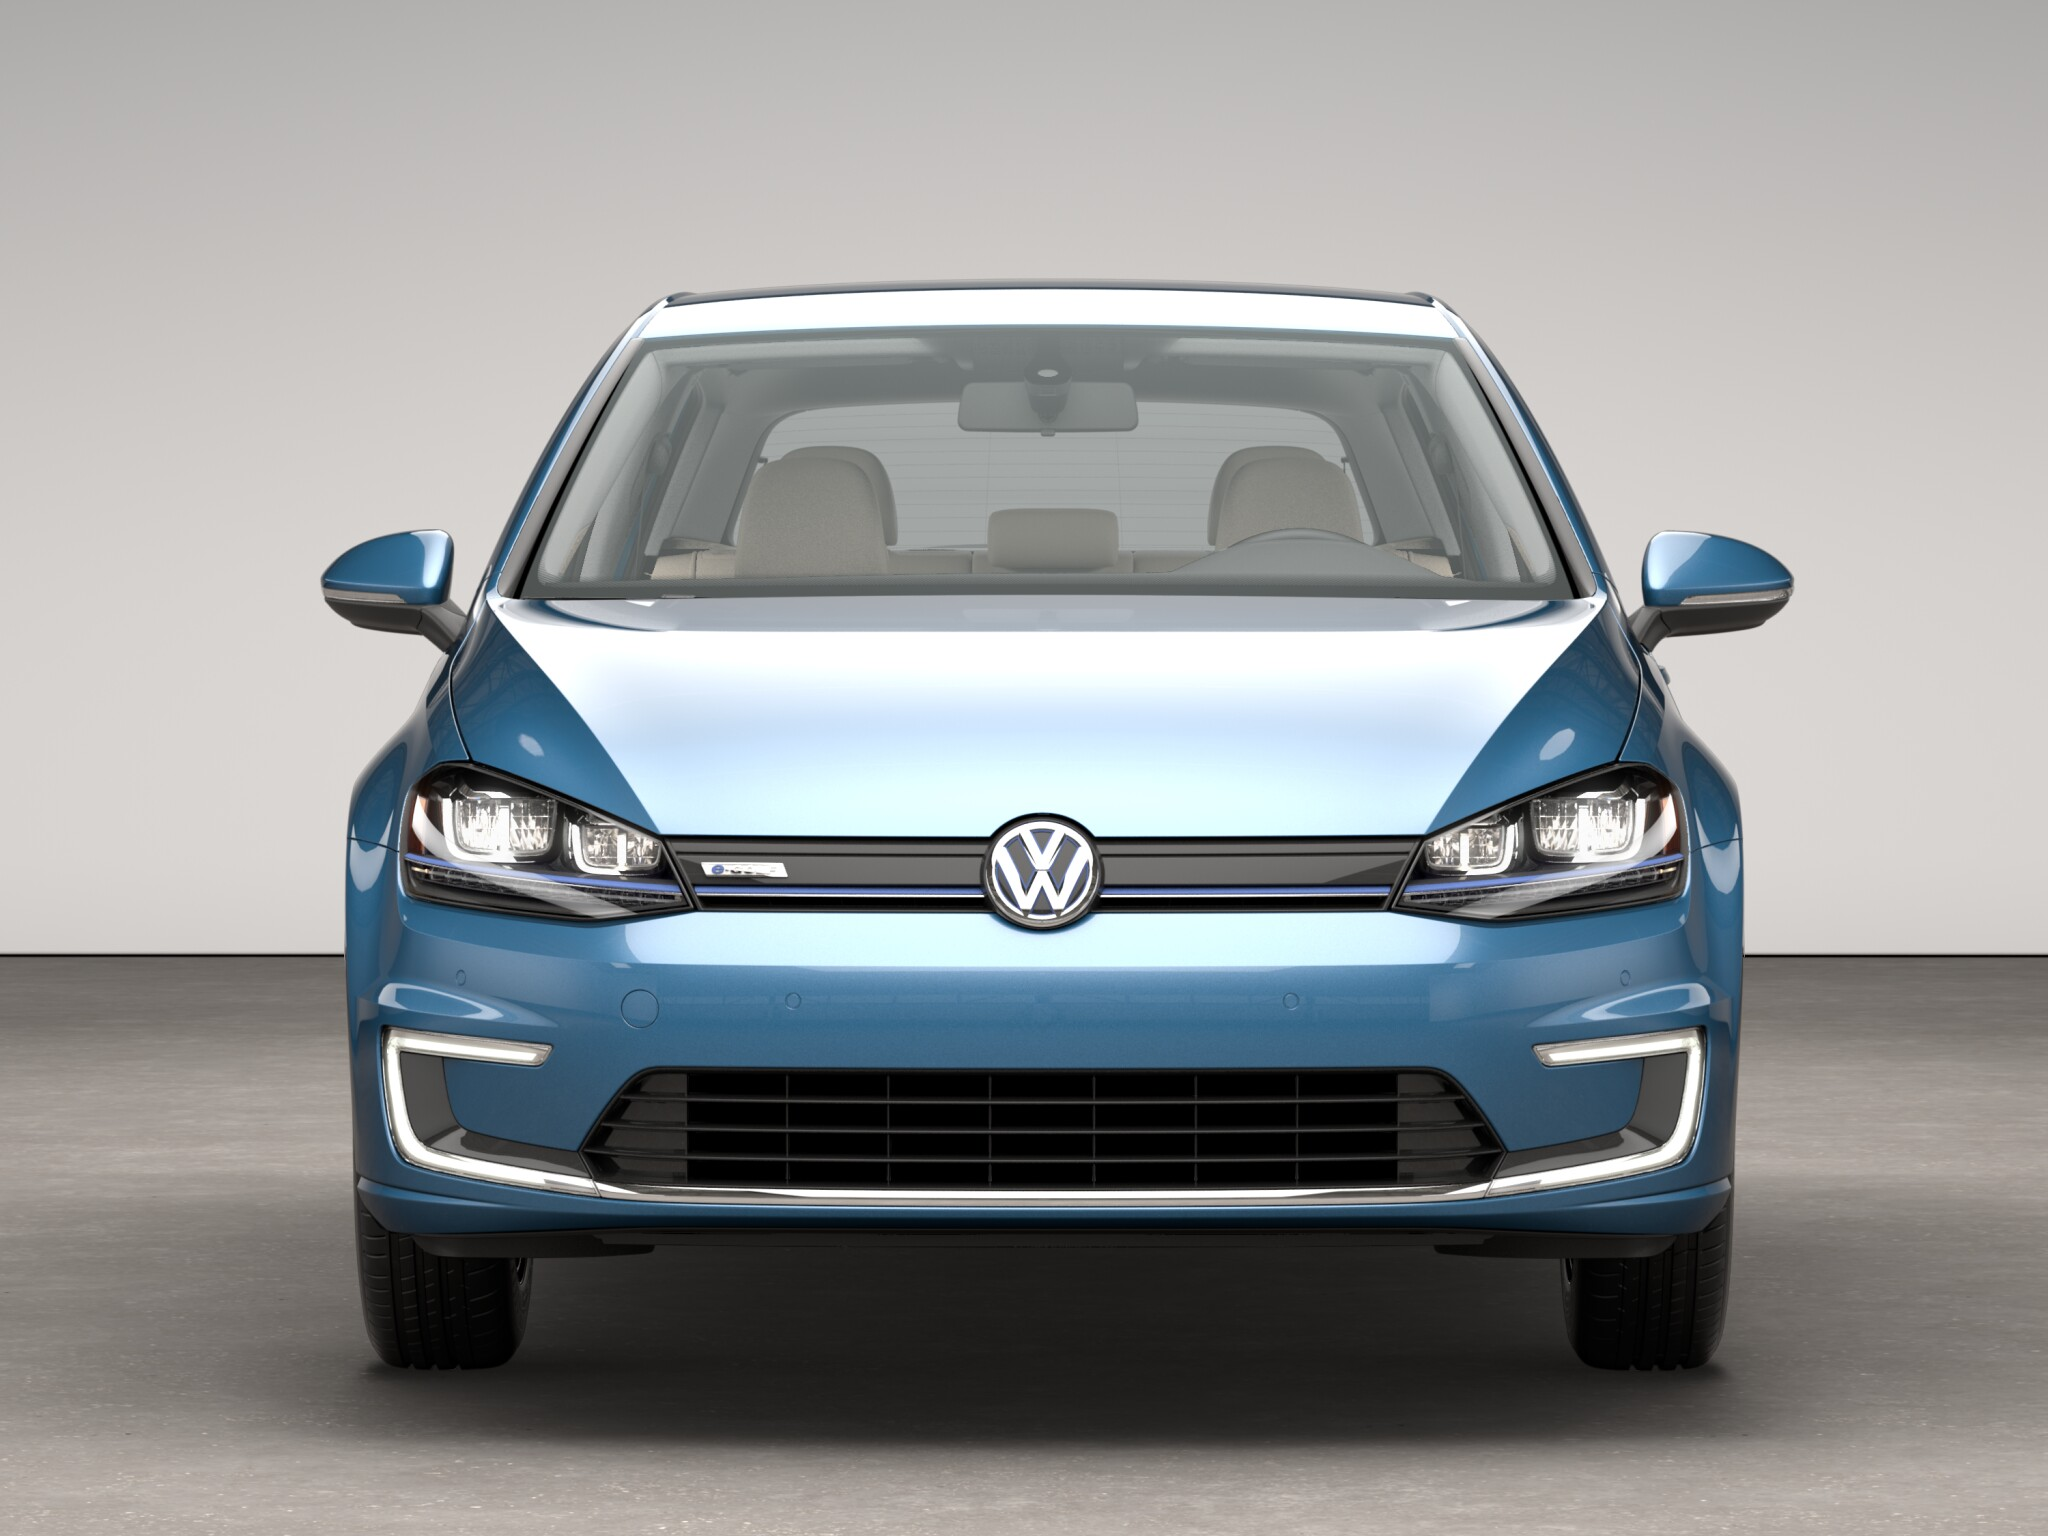 2016 Volkswagen E Golf Front End Photo (View 11 of 11)